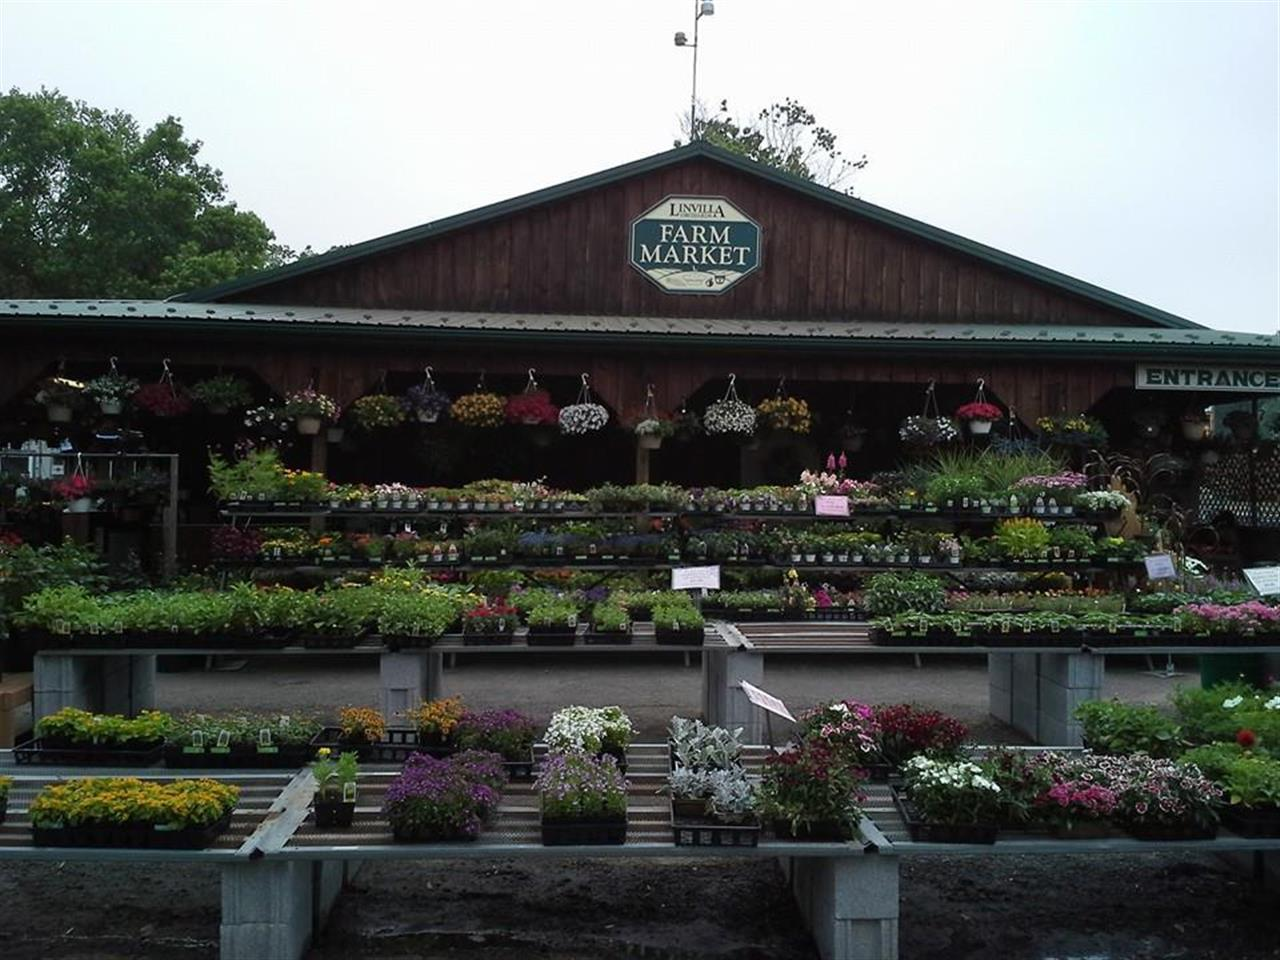 Linvilla Orchards 137 W. Knowlton Road  Media, PA 19063 Where family traditions begin! Hayrides, marshmallow roasting by the bonfire, holiday events, apple cider, festivals, pony rides, kids play area, picnicking, food, fun & so much more!